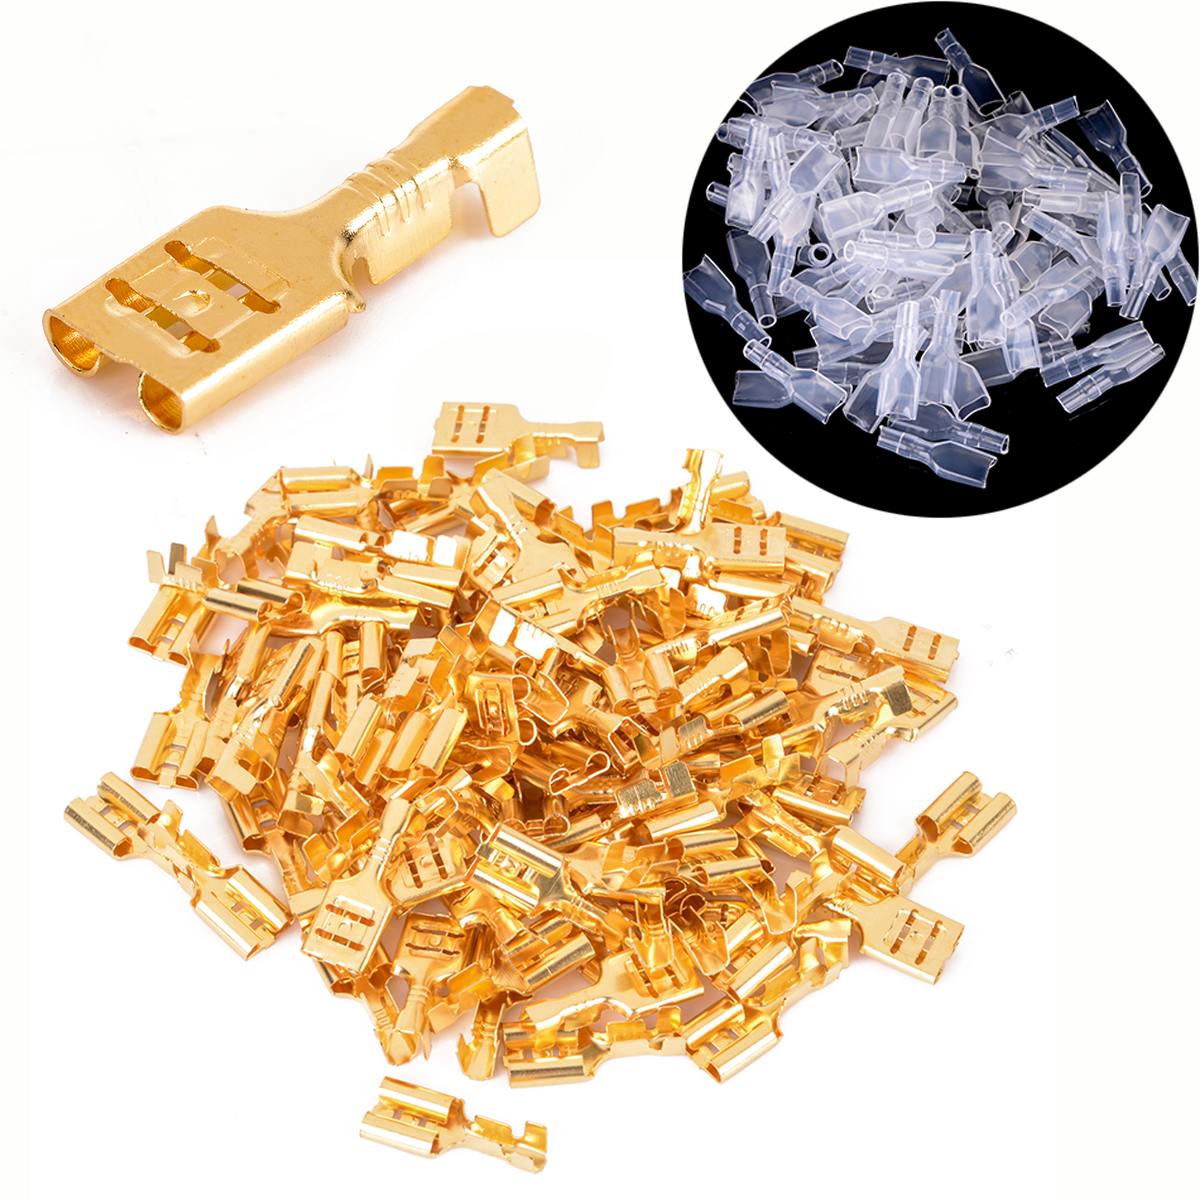 100pcs Brass Crimp Terminal 2.8/4.8/6.3mm Female Spade Connectors with 100pcs Insulating Sleeve 22-16 AWG 100pcs tda2040v tda2040